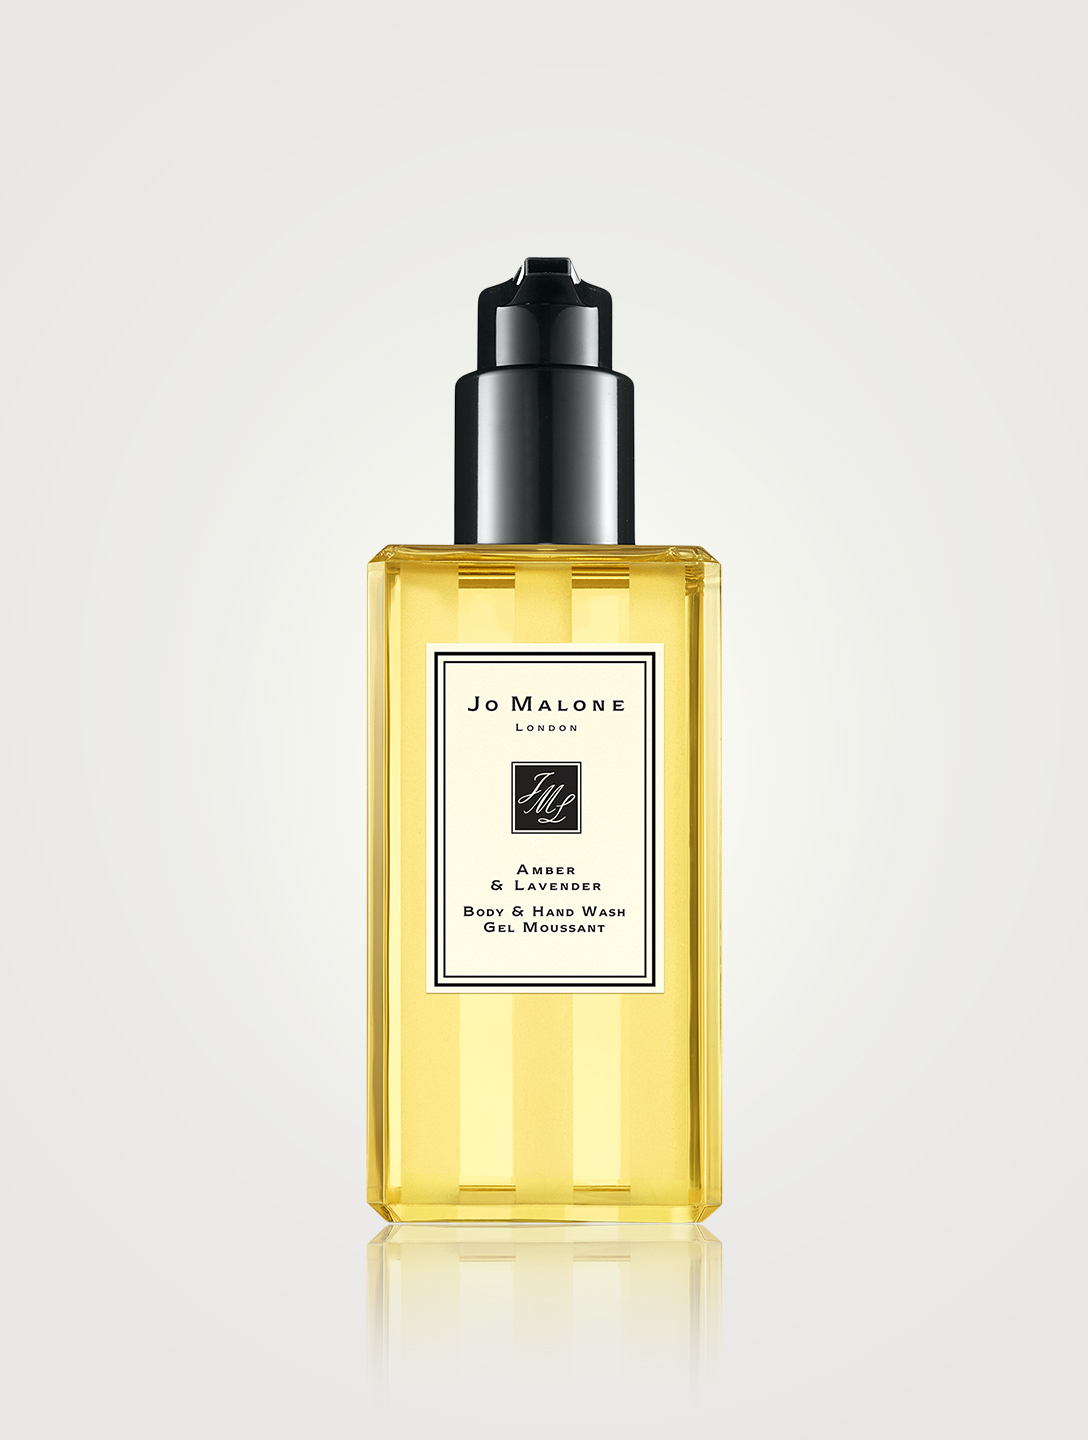 JO MALONE LONDON Amber & Lavender Body & Hand Wash Beauty